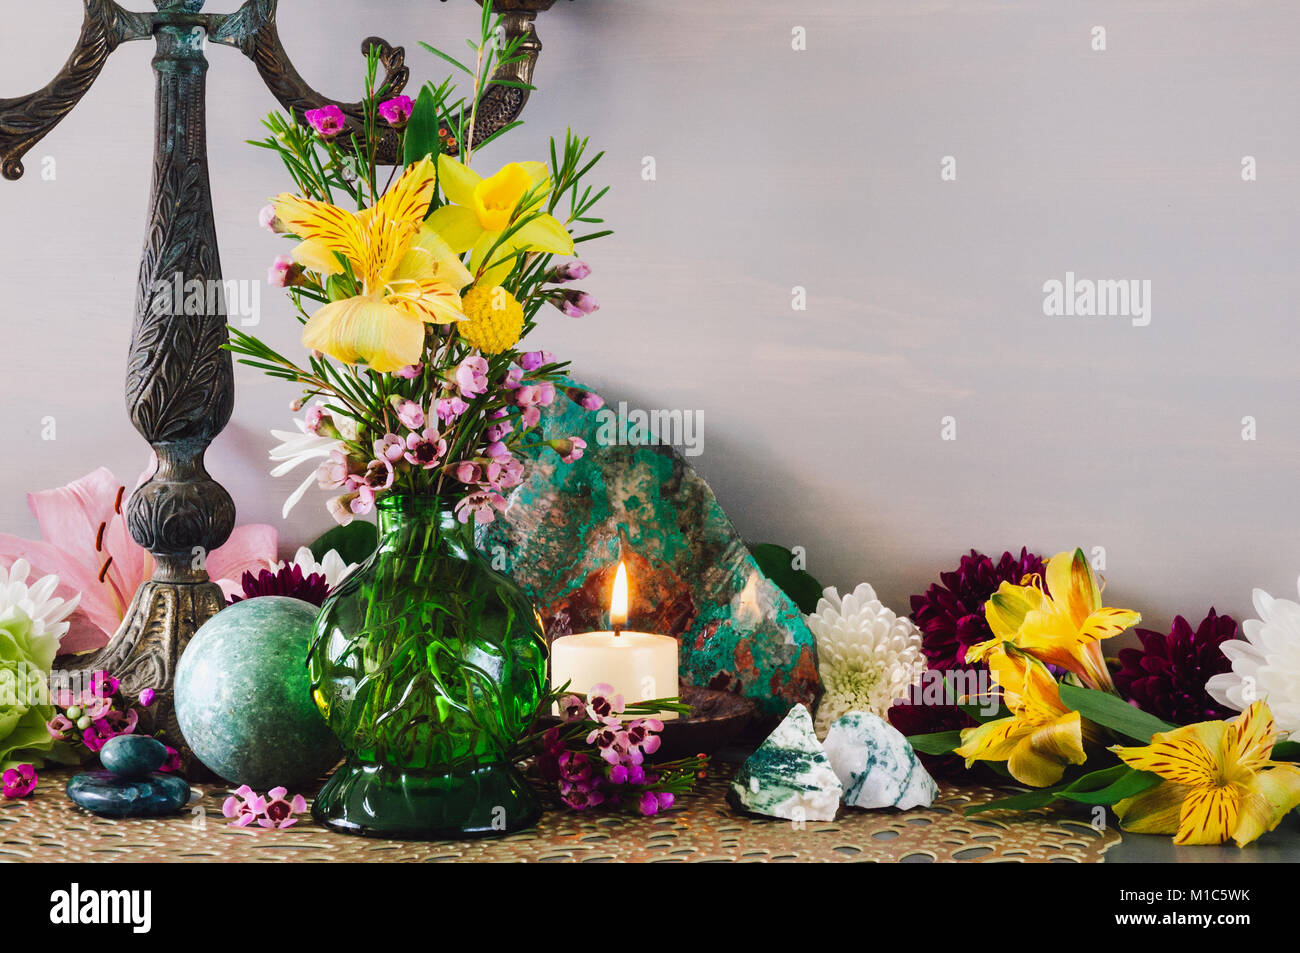 Altar celebrating the Spring Equinox with Assorted Flowers and Stones. - Stock Image